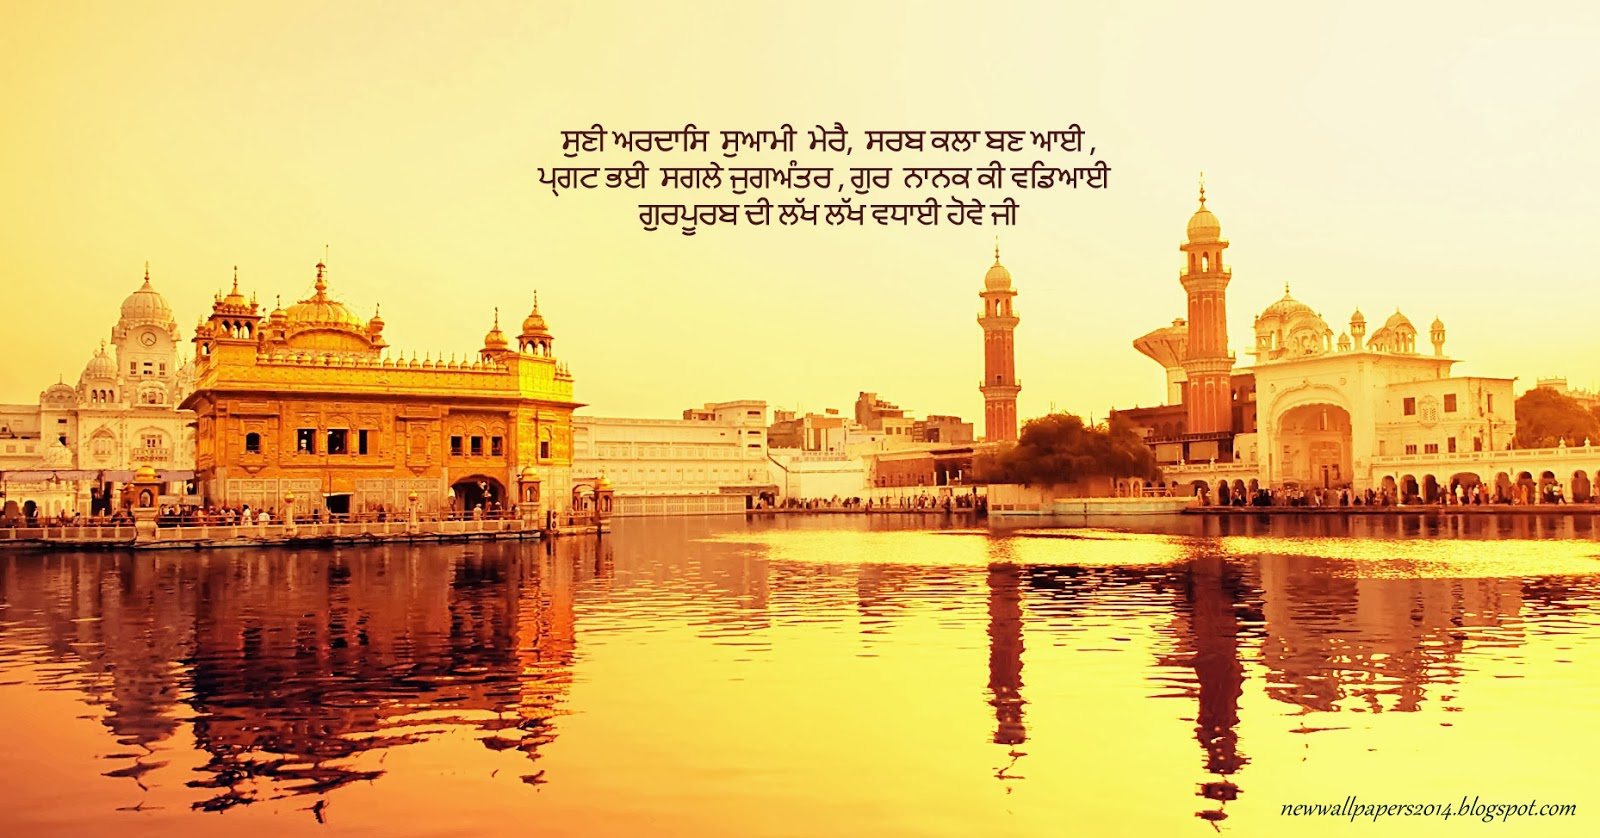 The Golden Temple -The Golden Temple HD Wallpapers - Hd ...